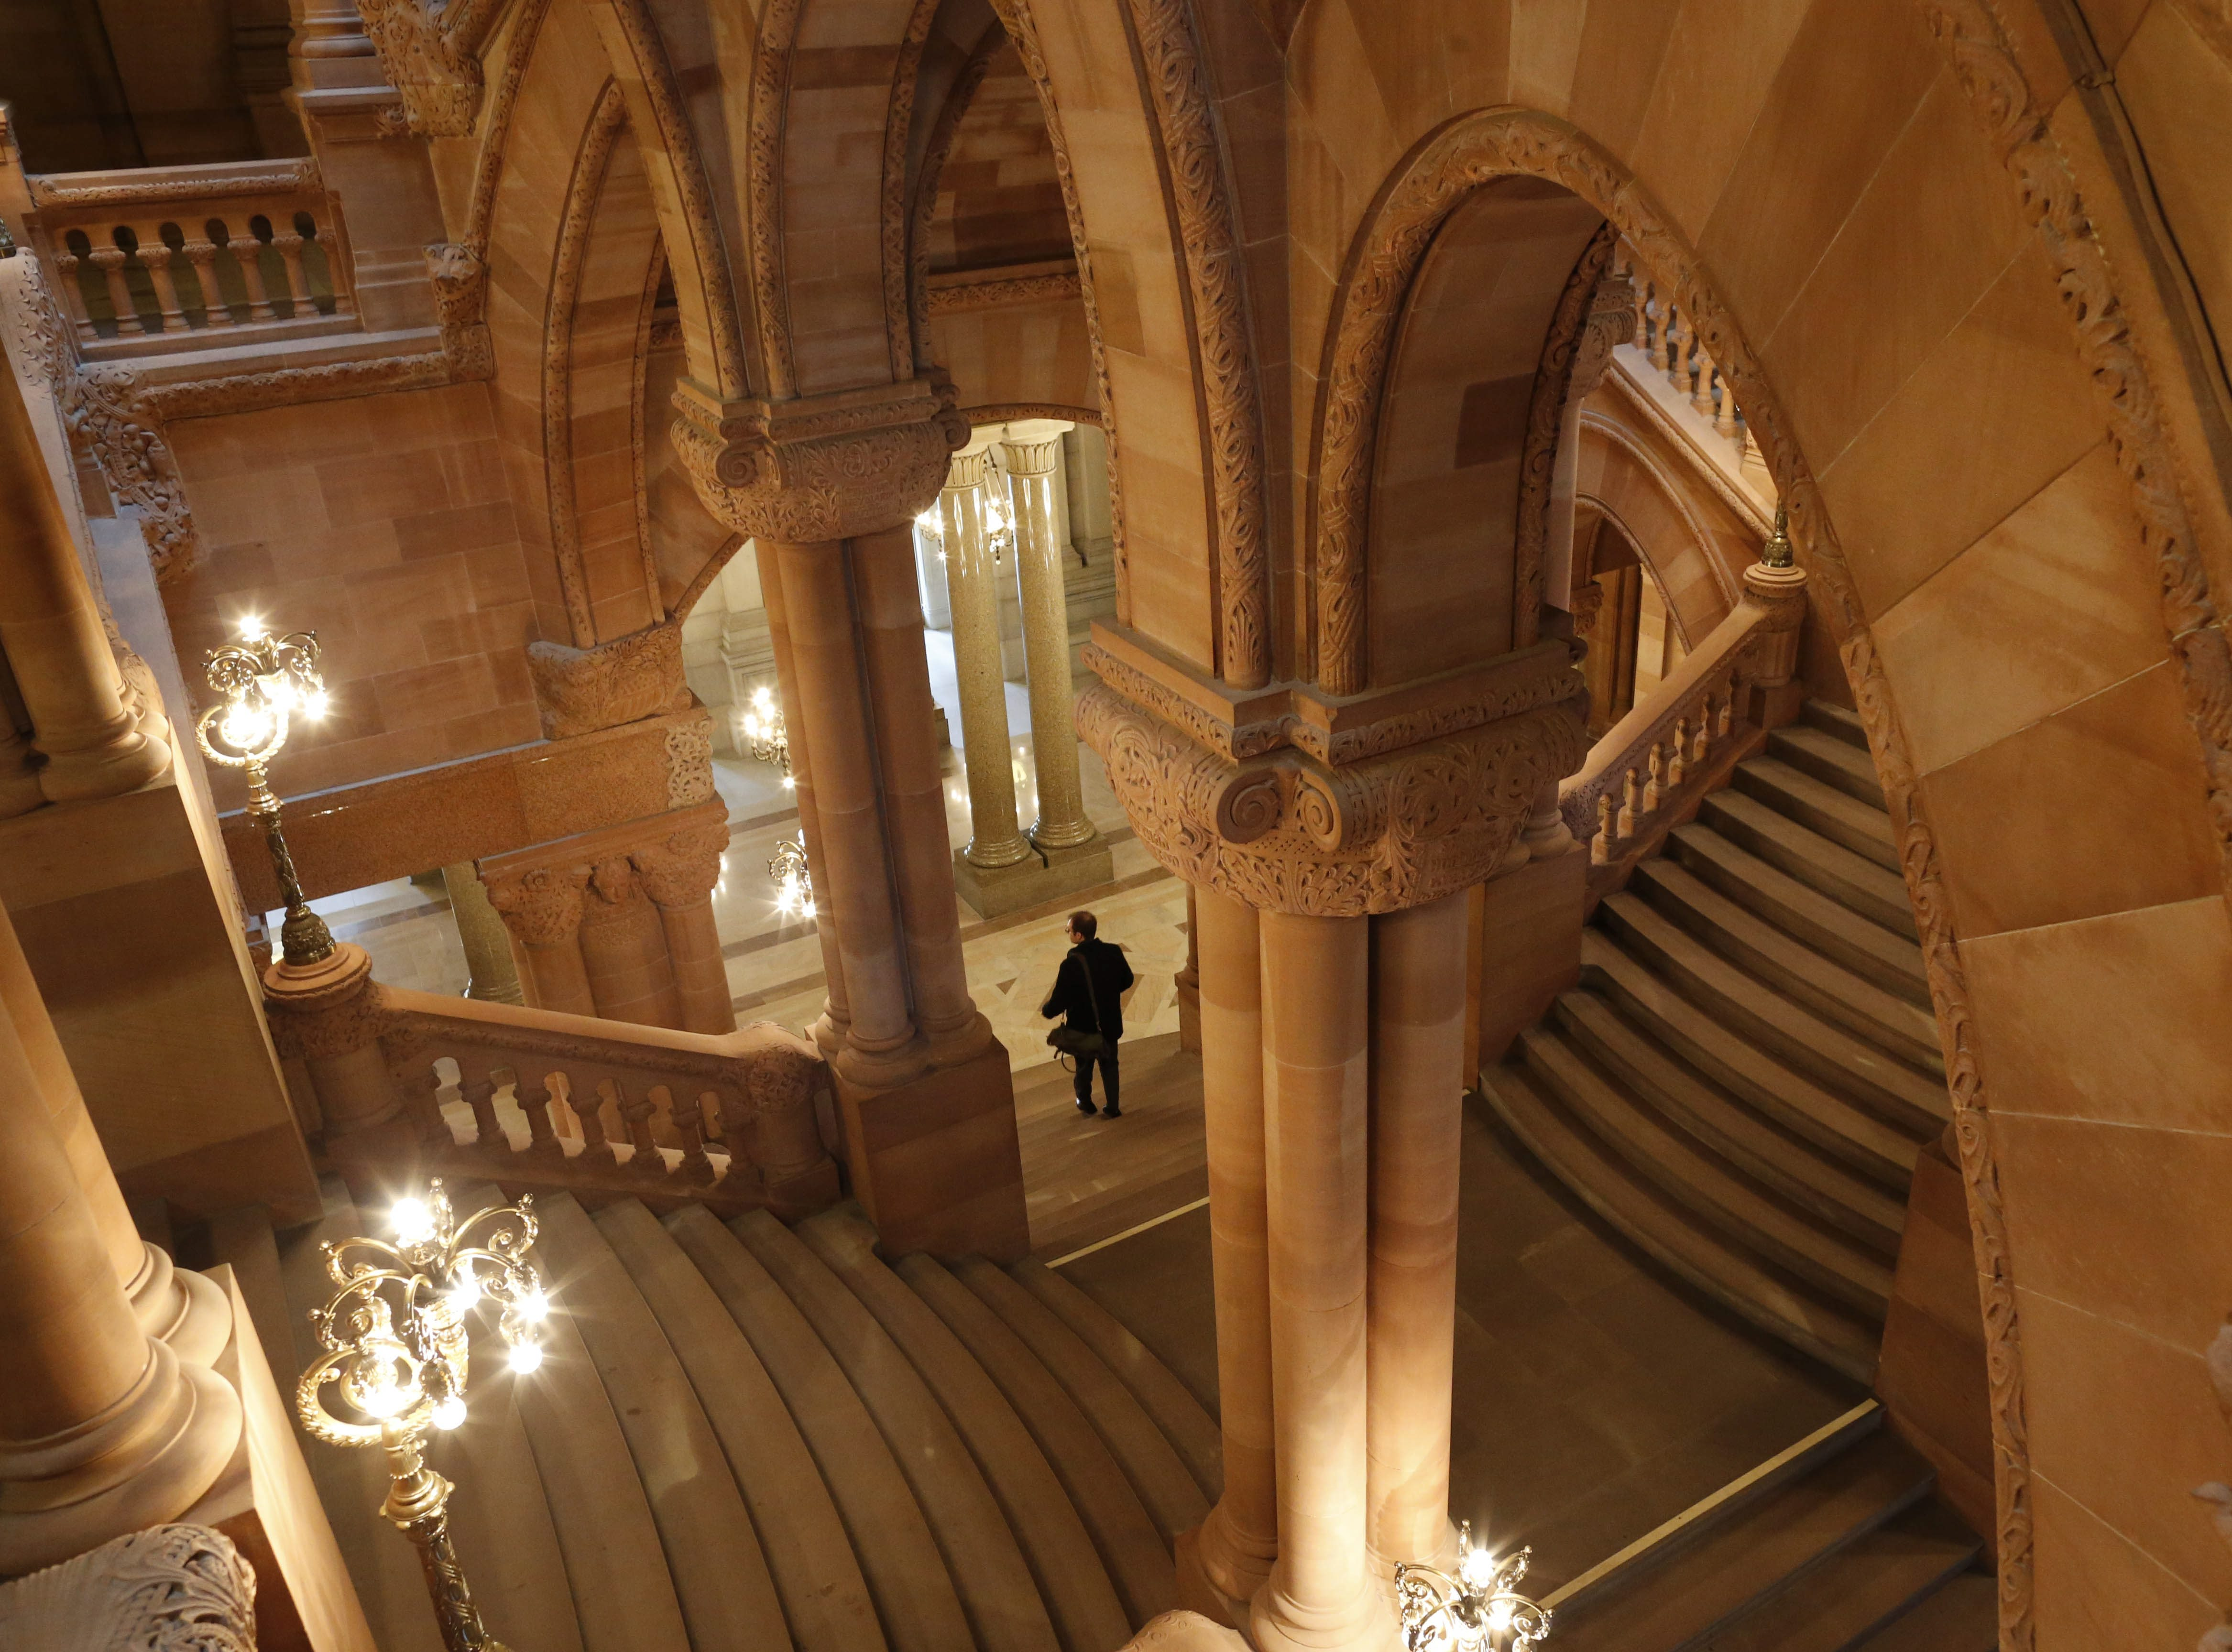 Assembly Speaker Carl Heastie has asked his colleagues to return to the State Capitol this week. (Derek Gee/Buffalo News)